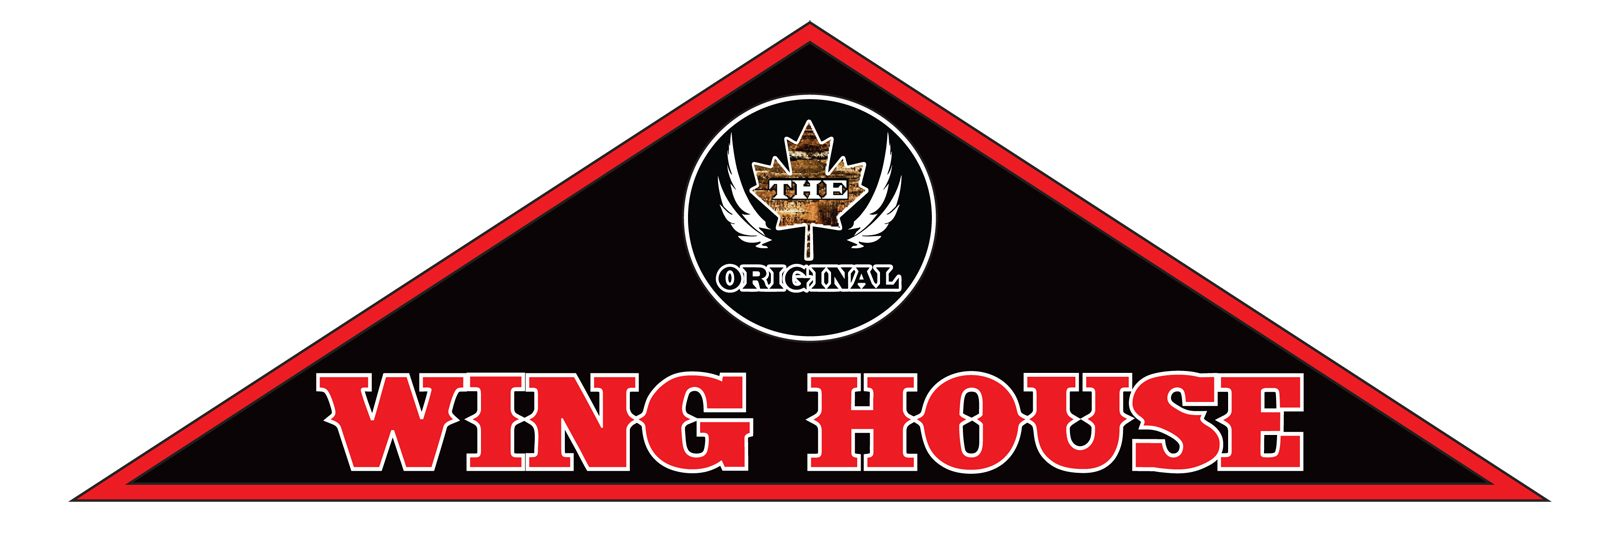 Wing House set to open in Cornwall, holding hiring fair